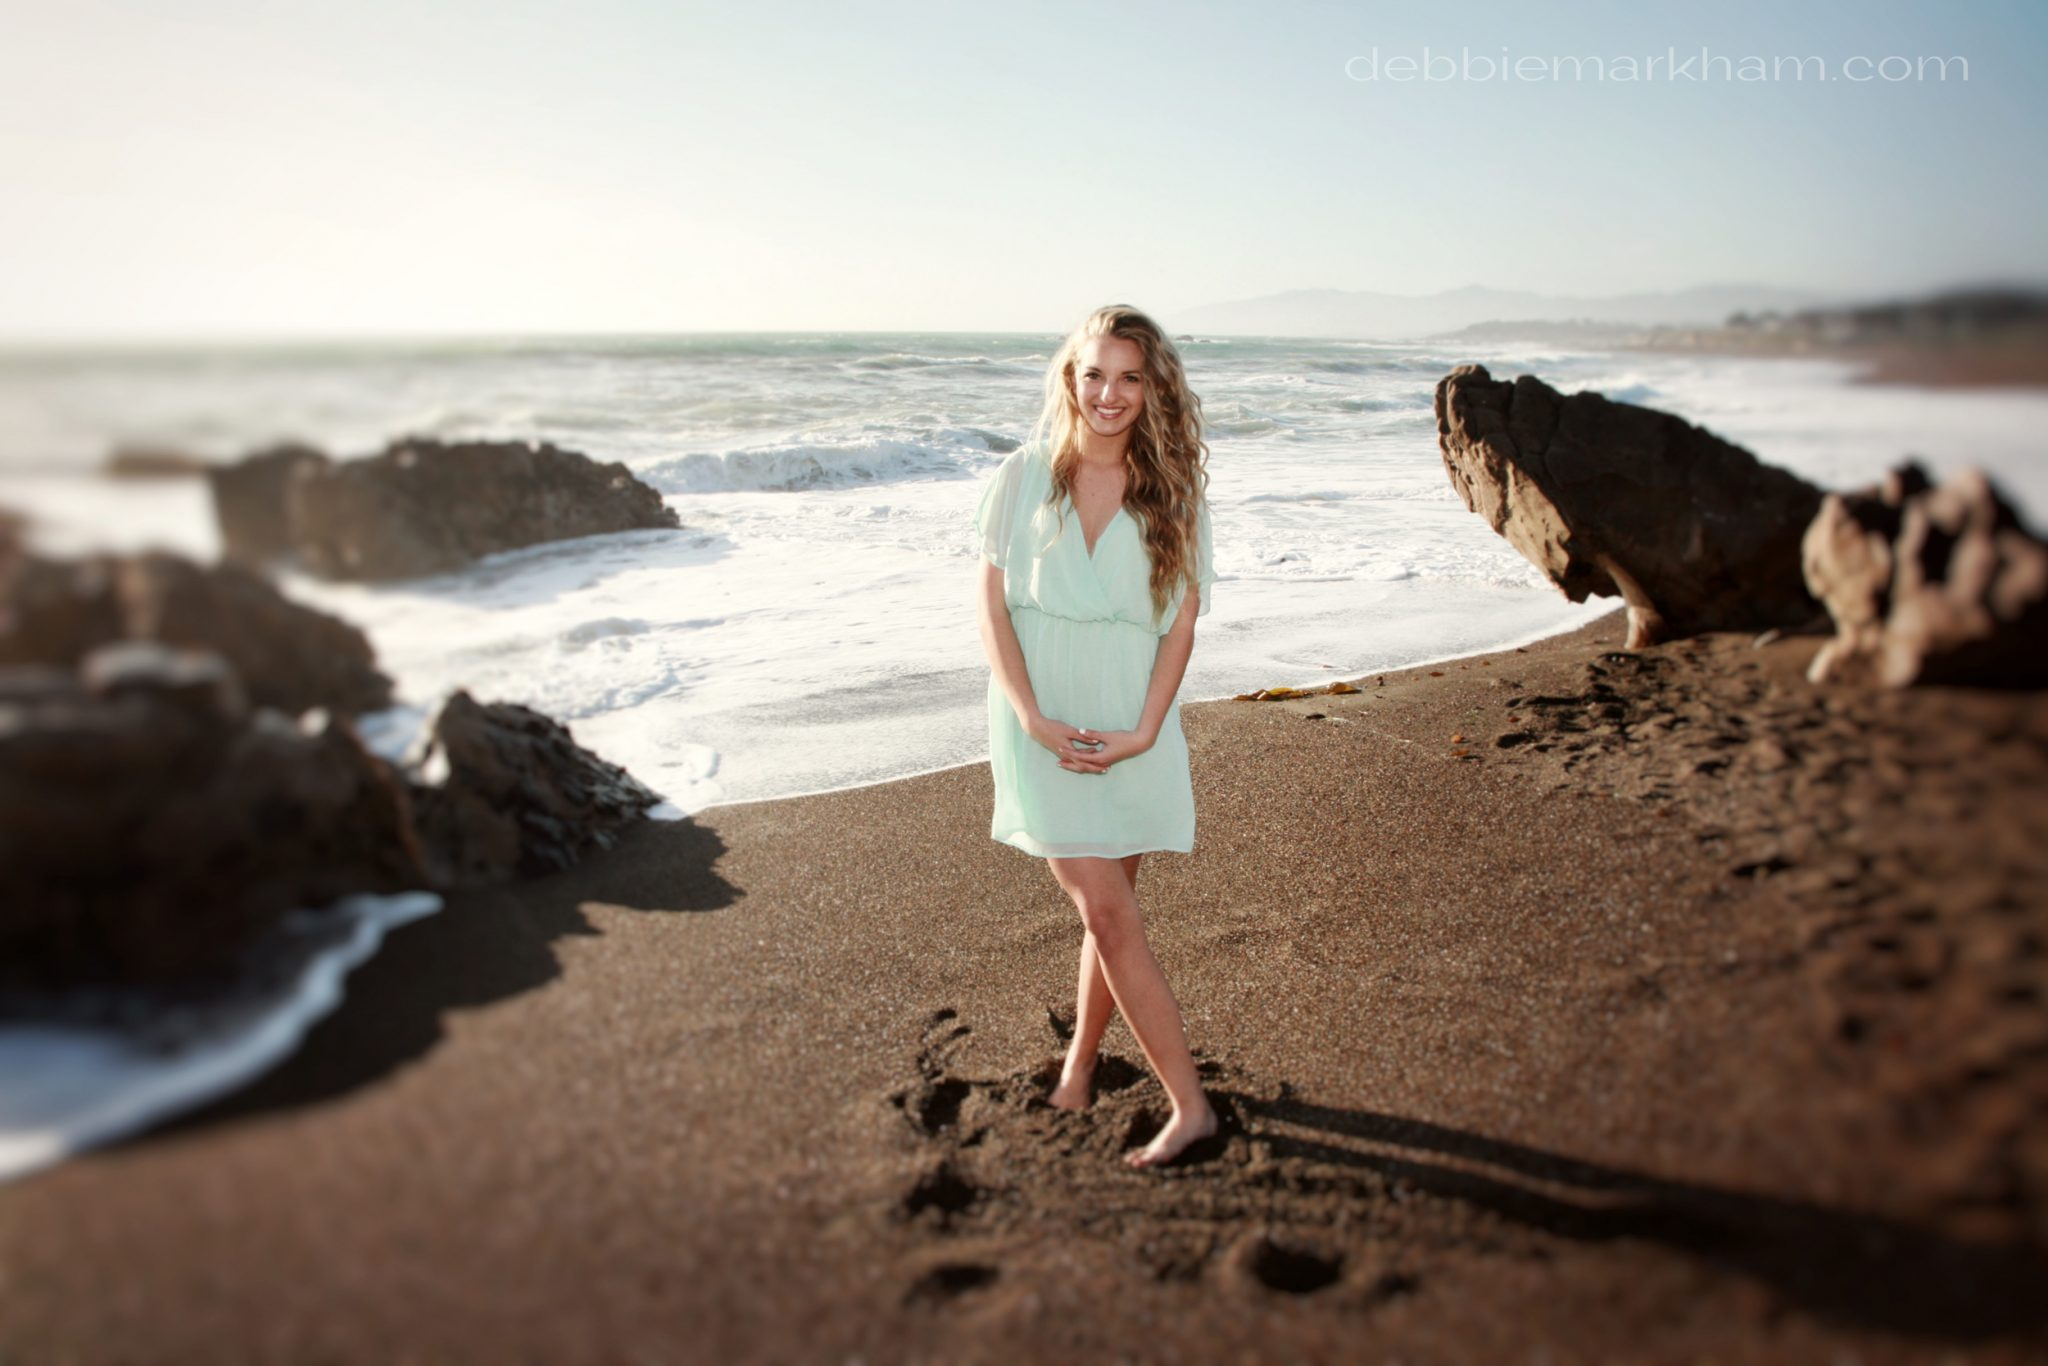 Kendall Senior Portrait on the Beach-Cambria33